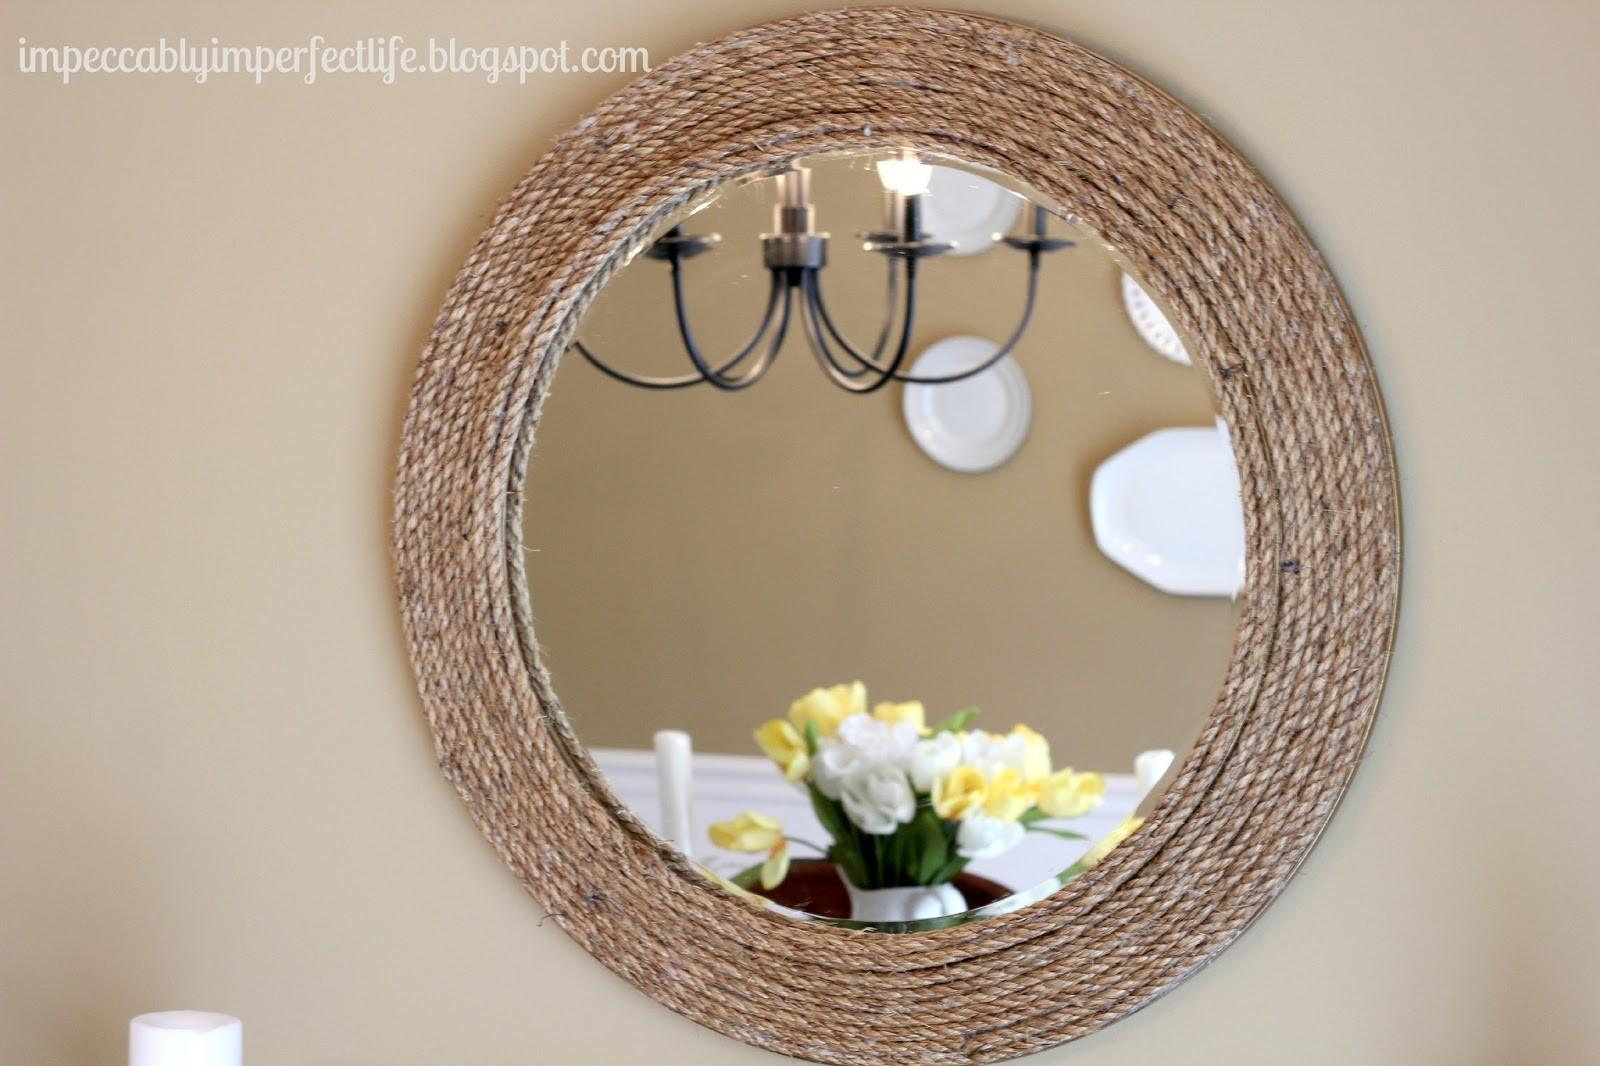 Our Impeccably Imperfect Life Diy Rope Mirror Ballard